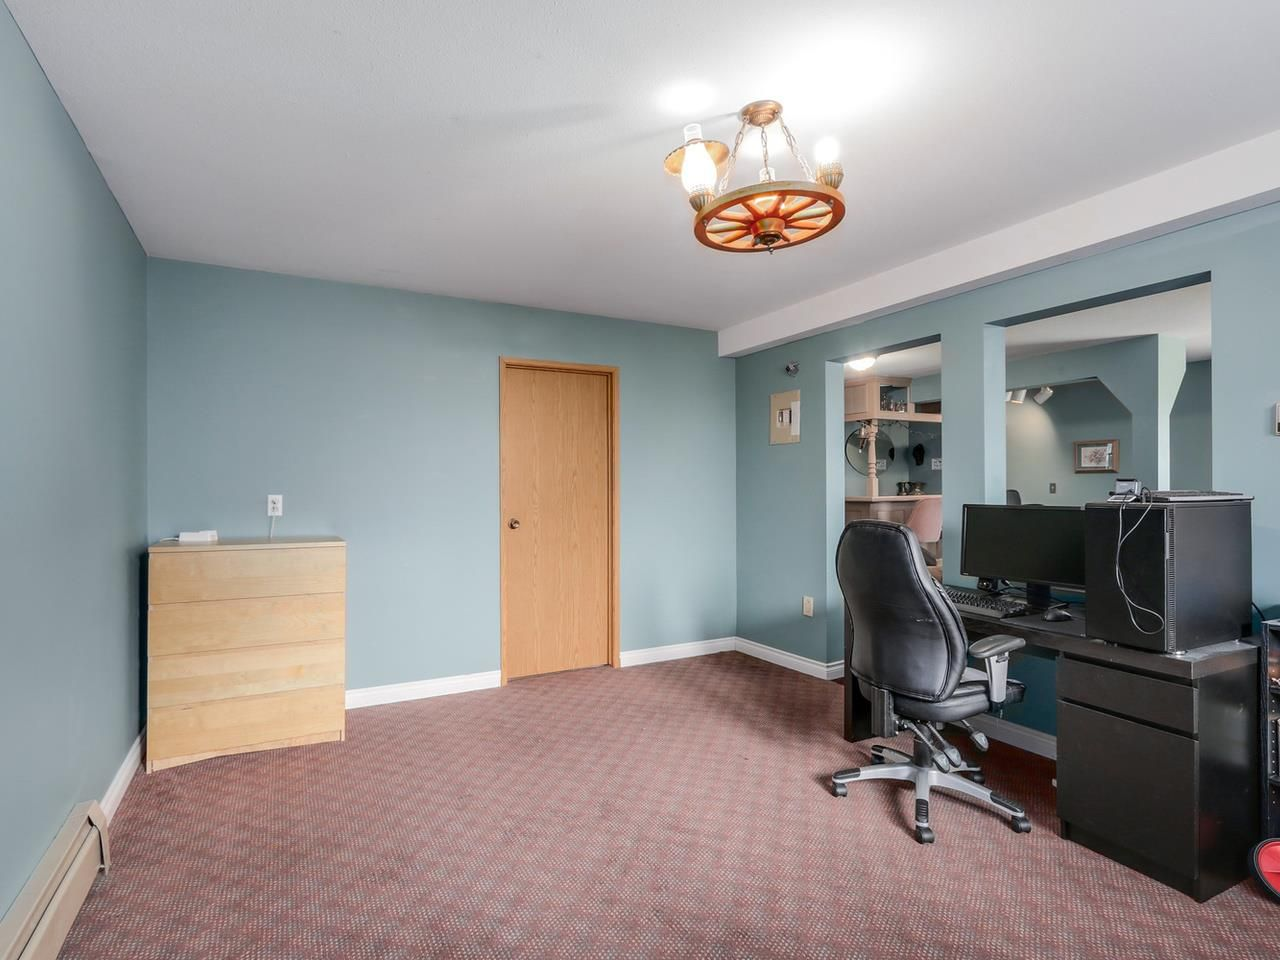 """Photo 14: Photos: 2559 BLUEBELL Avenue in Coquitlam: Summitt View House for sale in """"SUMMITT VIEW"""" : MLS®# R2064204"""